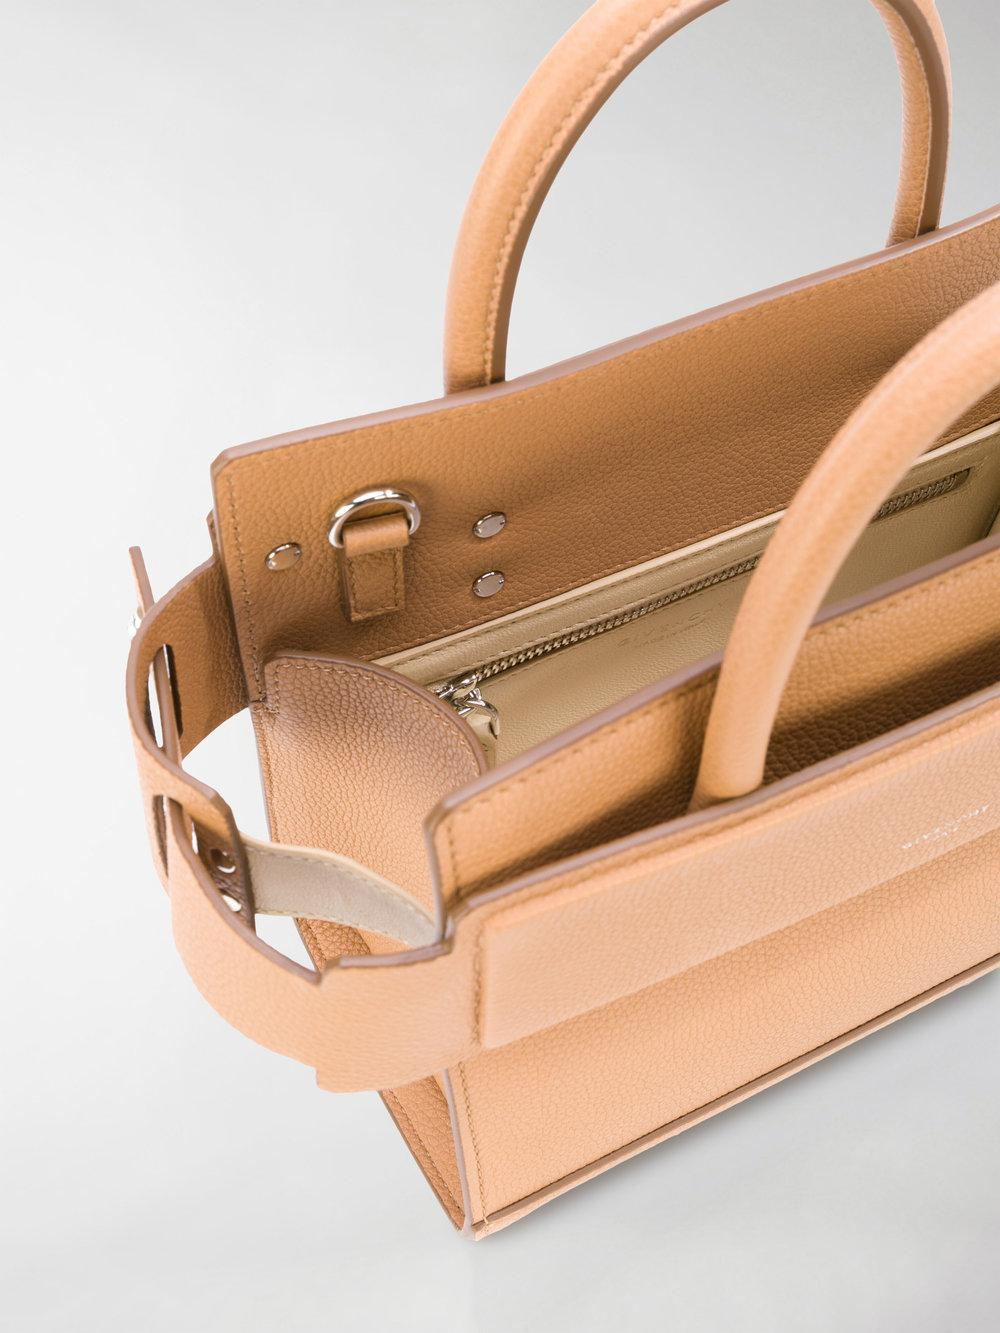 Givenchy Leather Horizon Tote